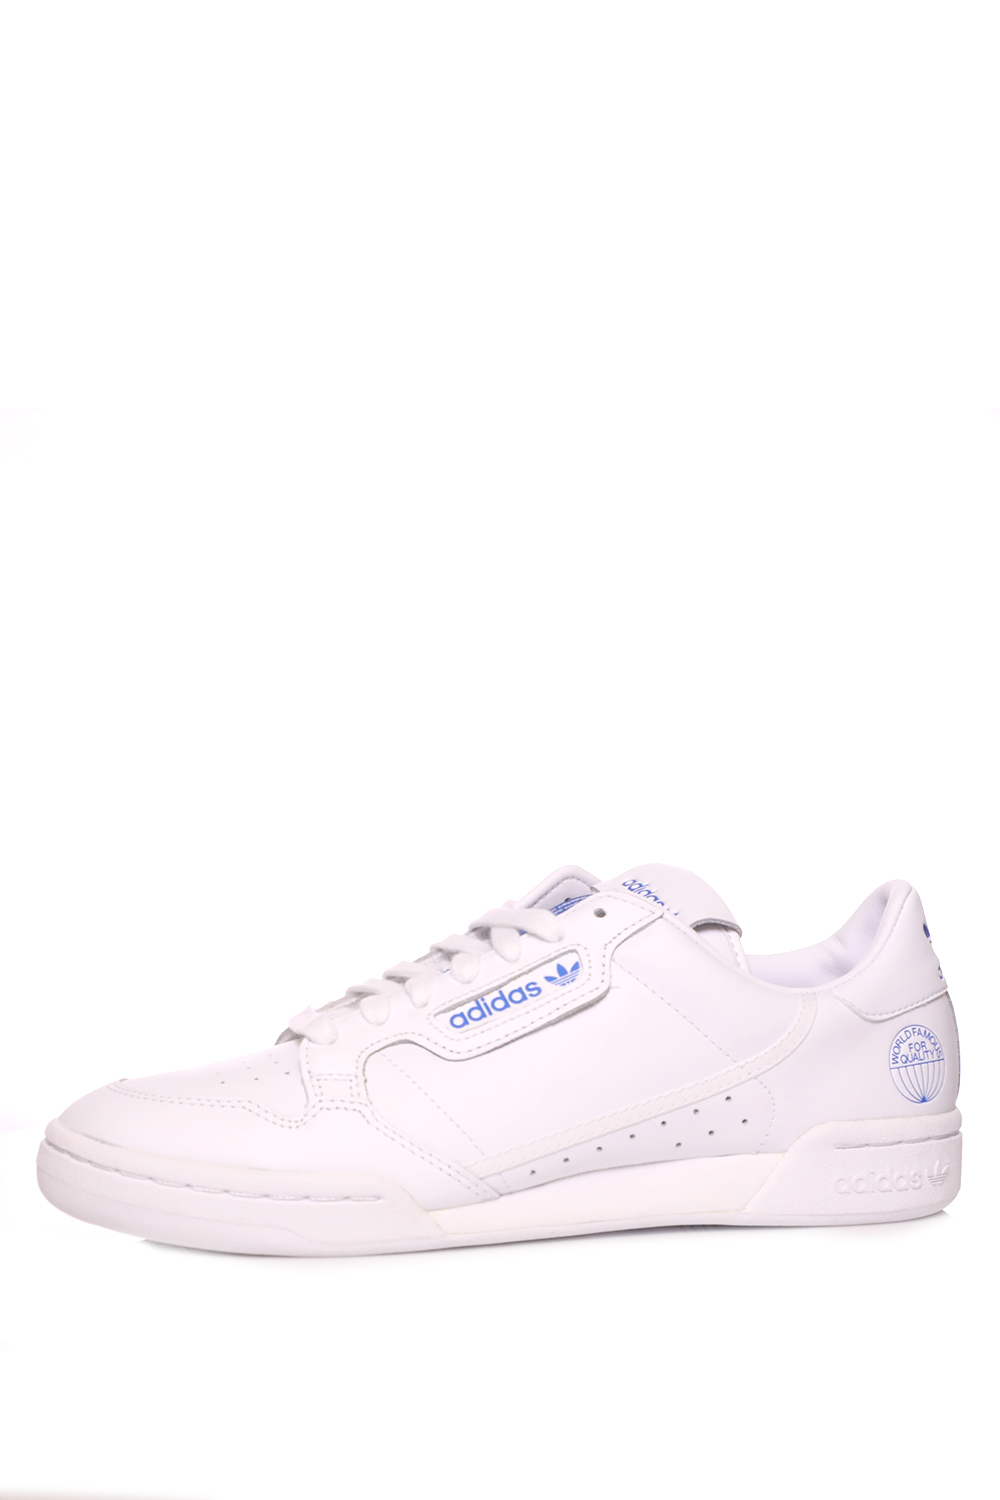 adidas Originals – Ανδρικά sneakers adidas Originals CONTINENTAL 80 λευκά